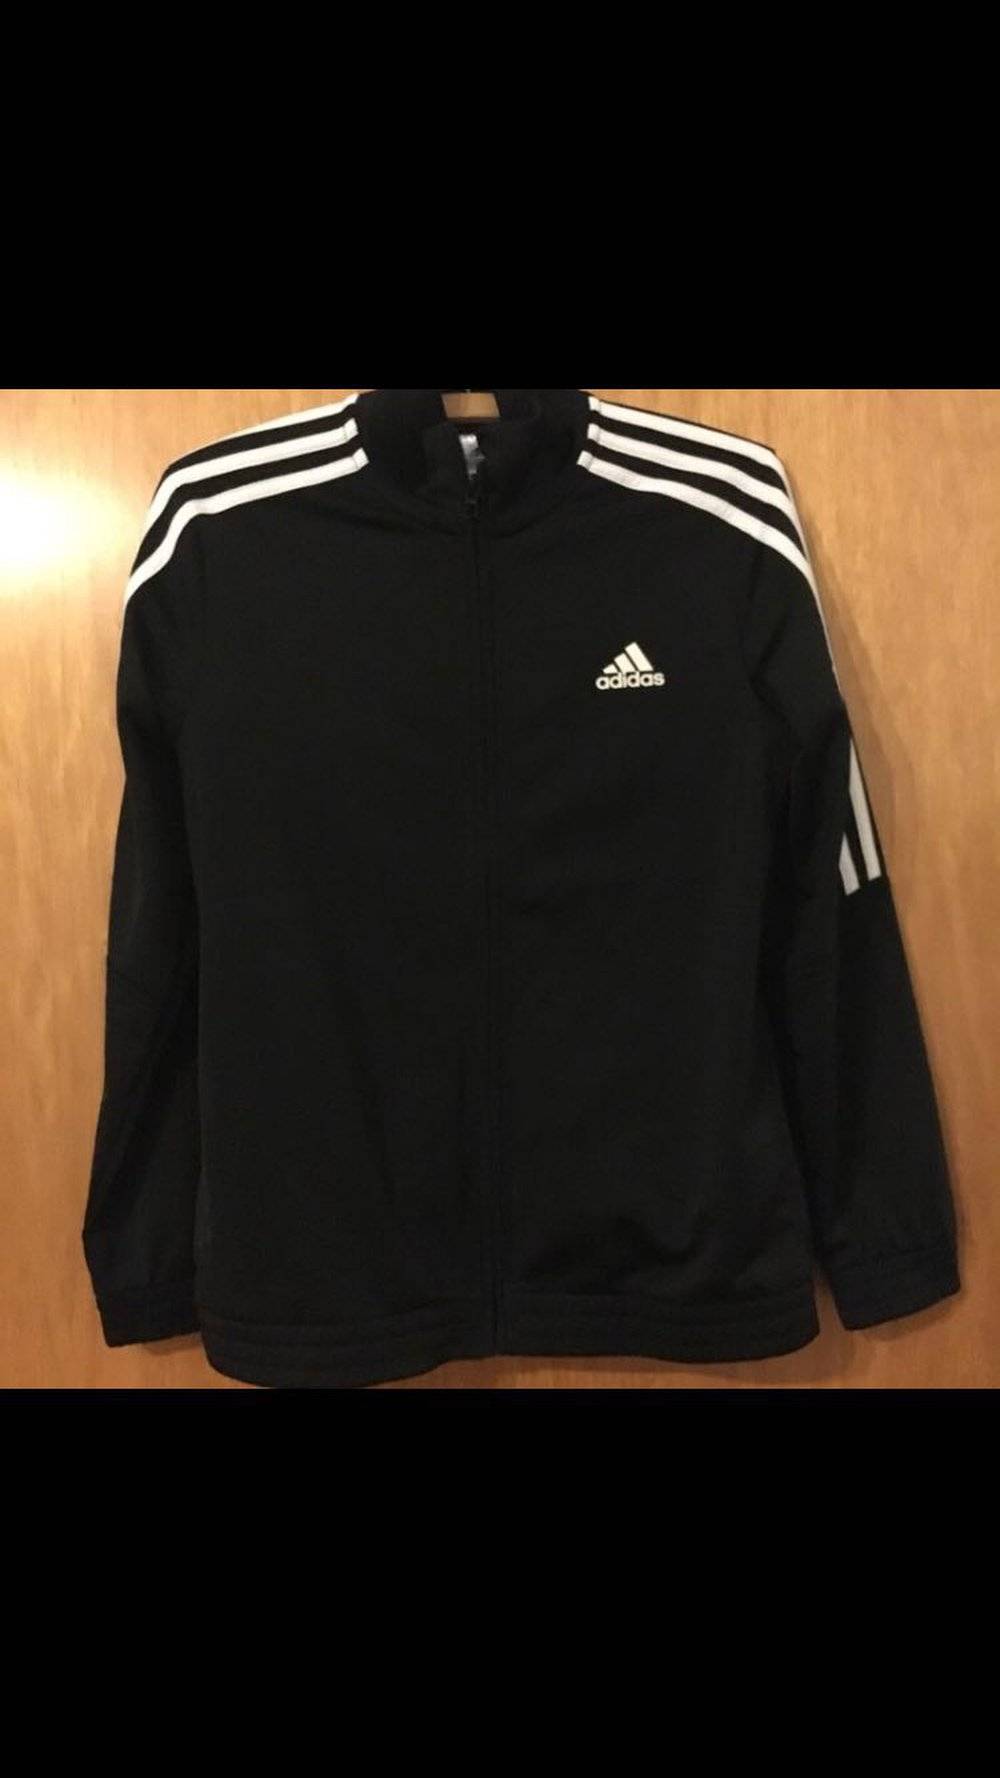 Factory Outlets Discounter Details für Adidas Sportjacke